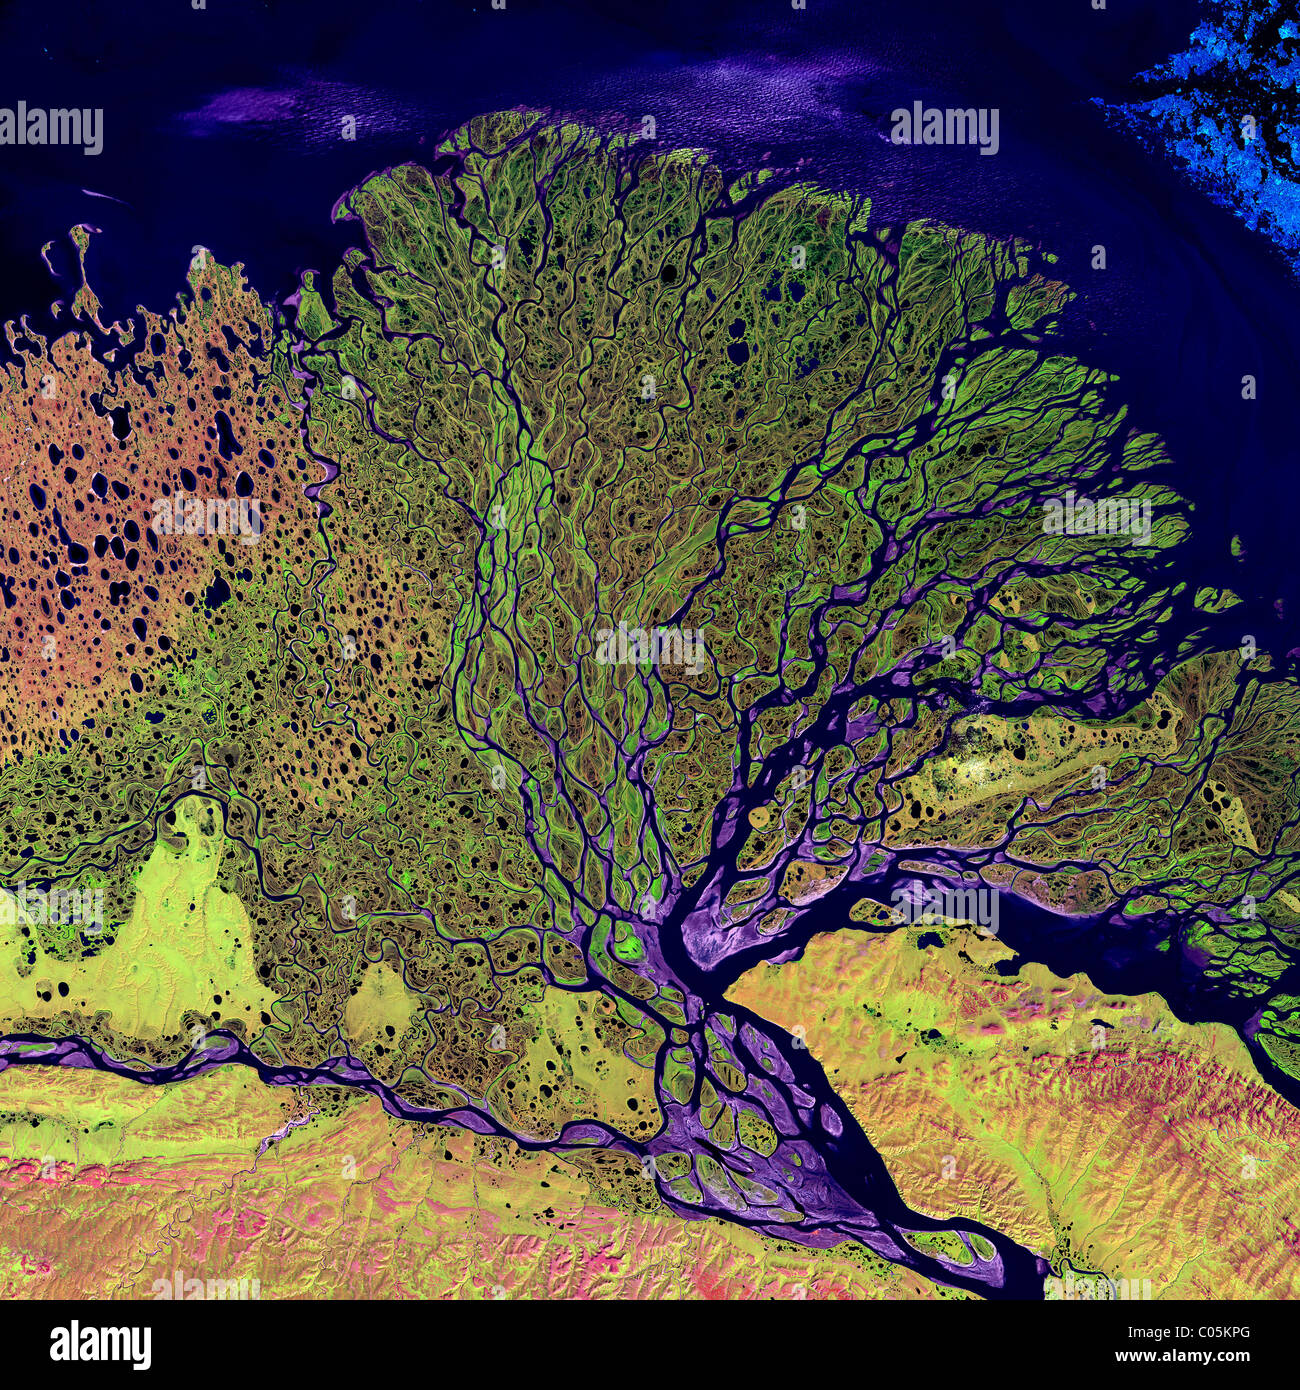 The Lena River in Russia, some 2,800 miles (4,400 km) long, is one of the largest rivers in the world. - Stock Image